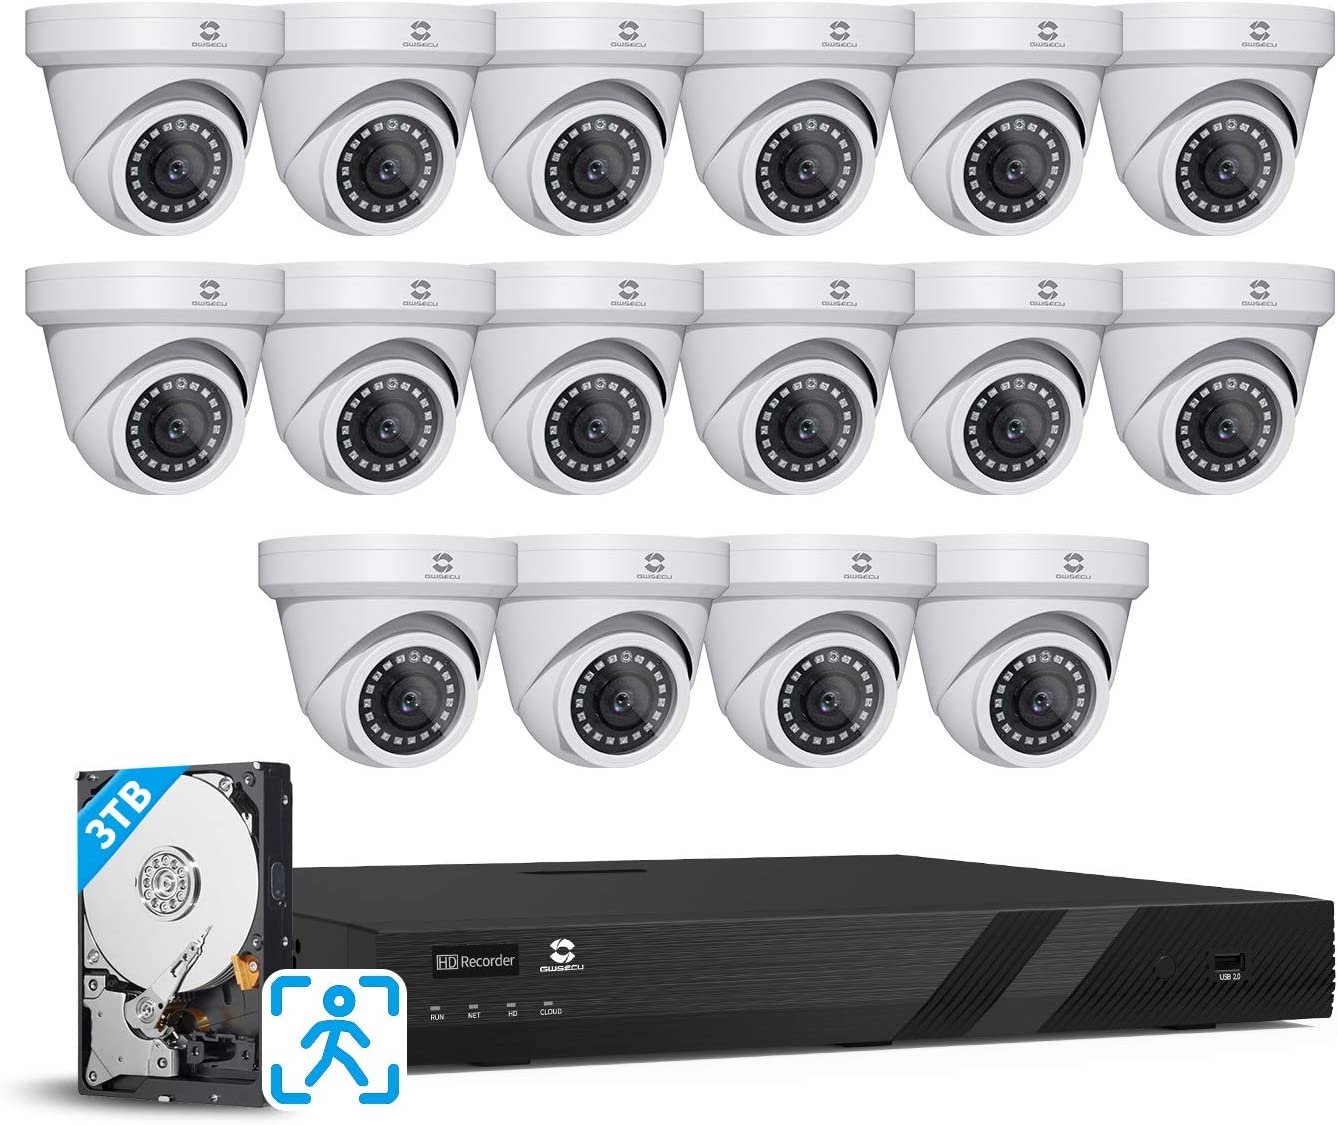 GWSECU 16CH 4K PoE Camera Security System, 8MP H.265 Video Surveillance NVR Kits with 3TB HDD, 16x 5MP Wired 2.8mm Person Detection IP Dome Turret Camera for Home Business 24/7 Audio Recording